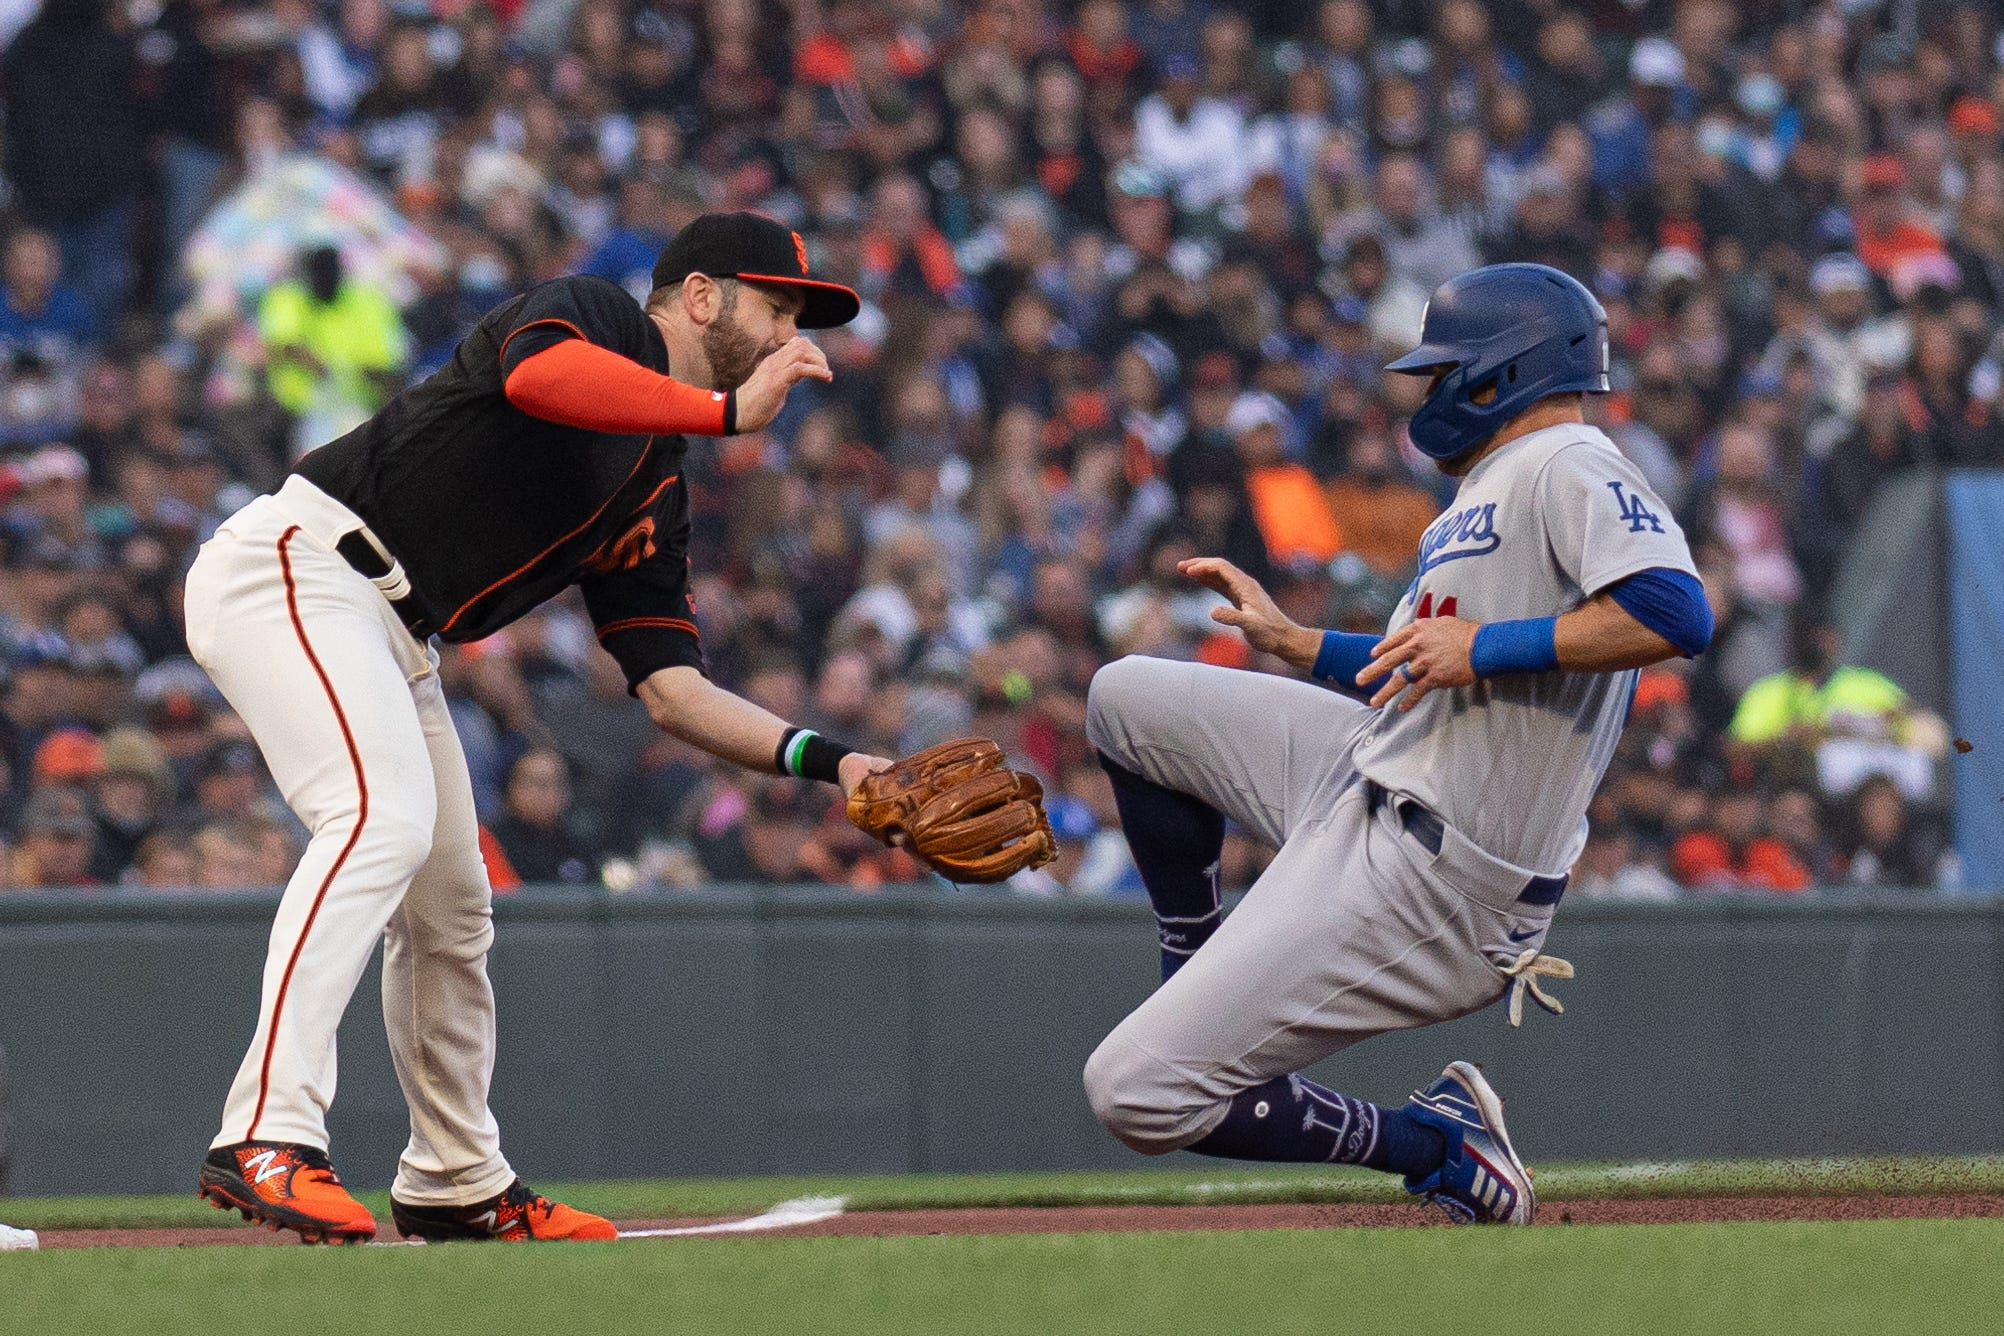 Previewing the NLDS matchups